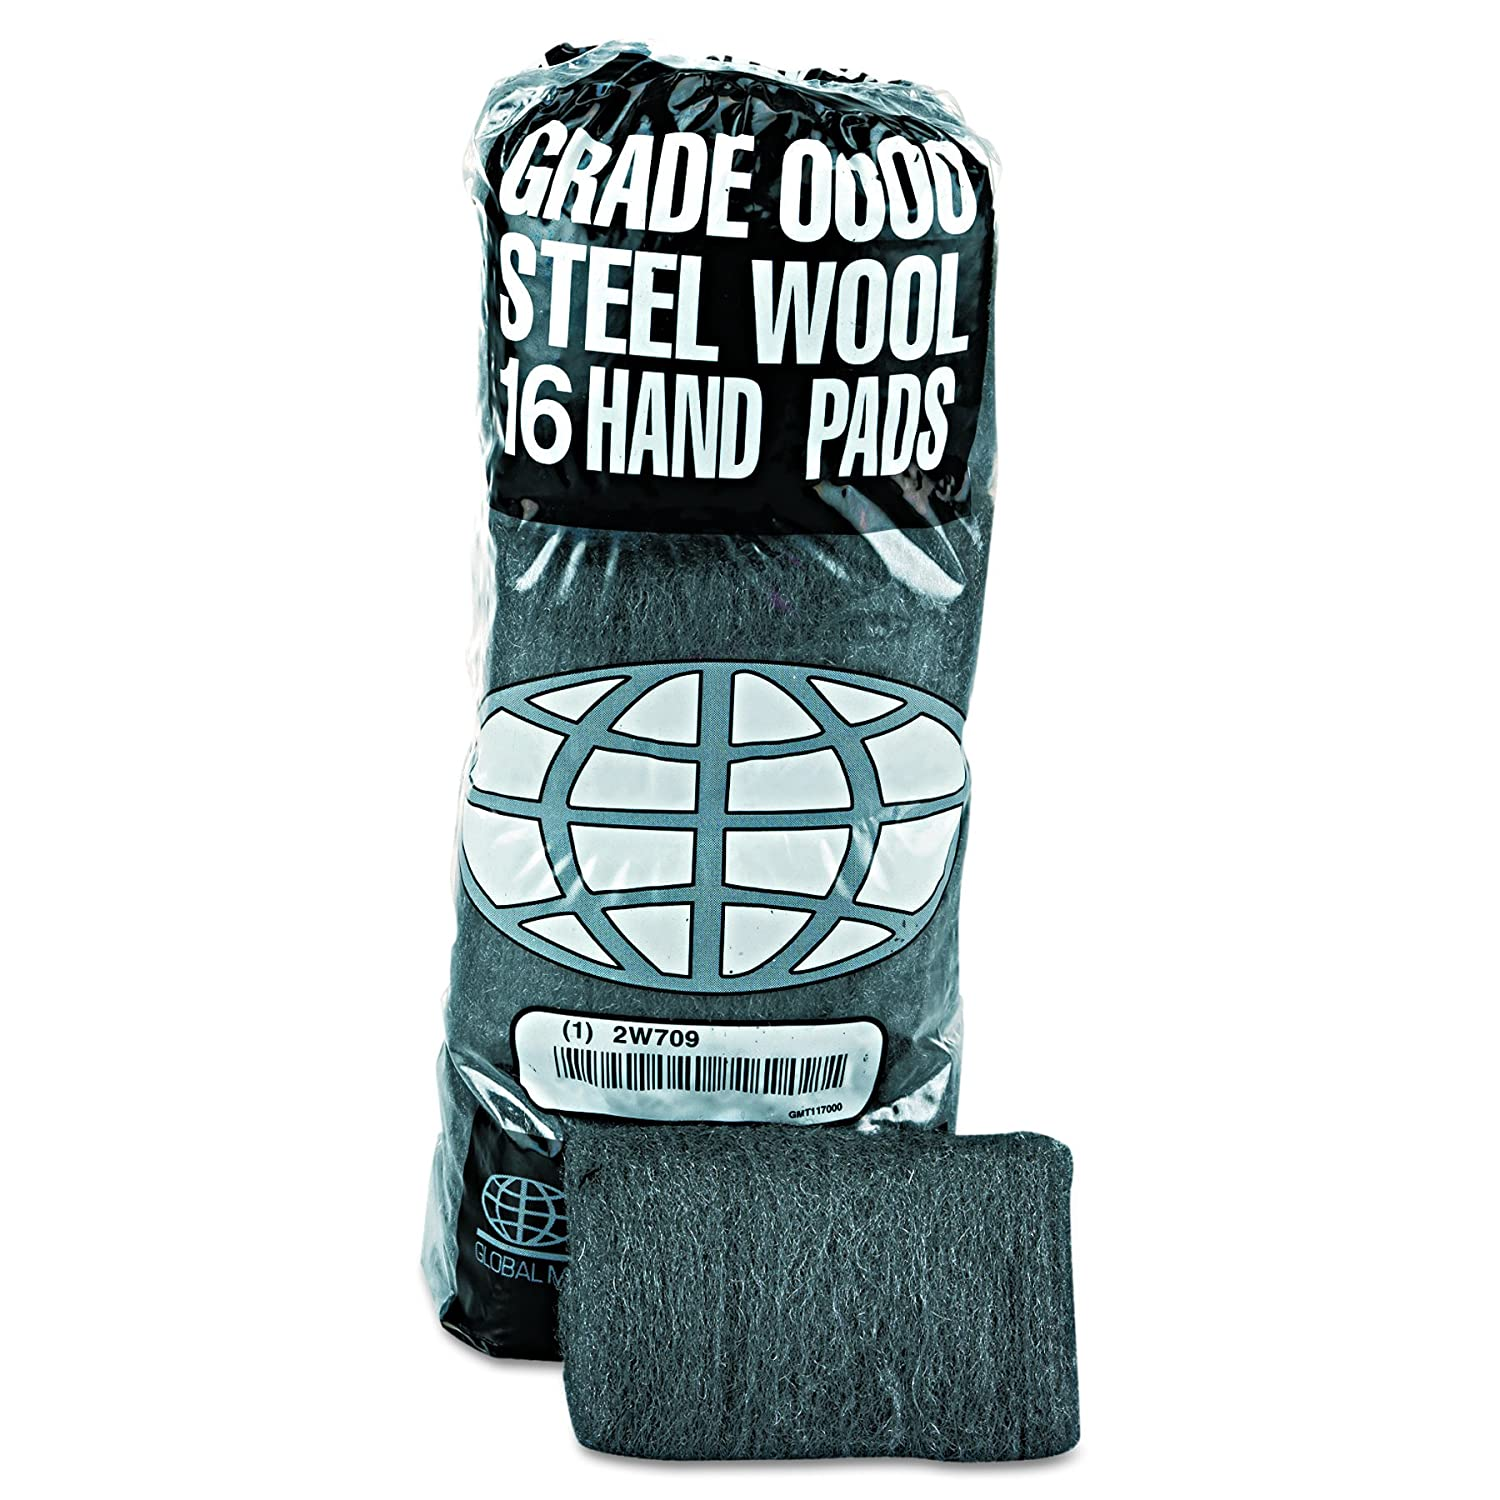 GMT 117000 Industrial-Quality Steel Wool Hand Pad Super Fine Grade 0000 16-Pack Case of 12